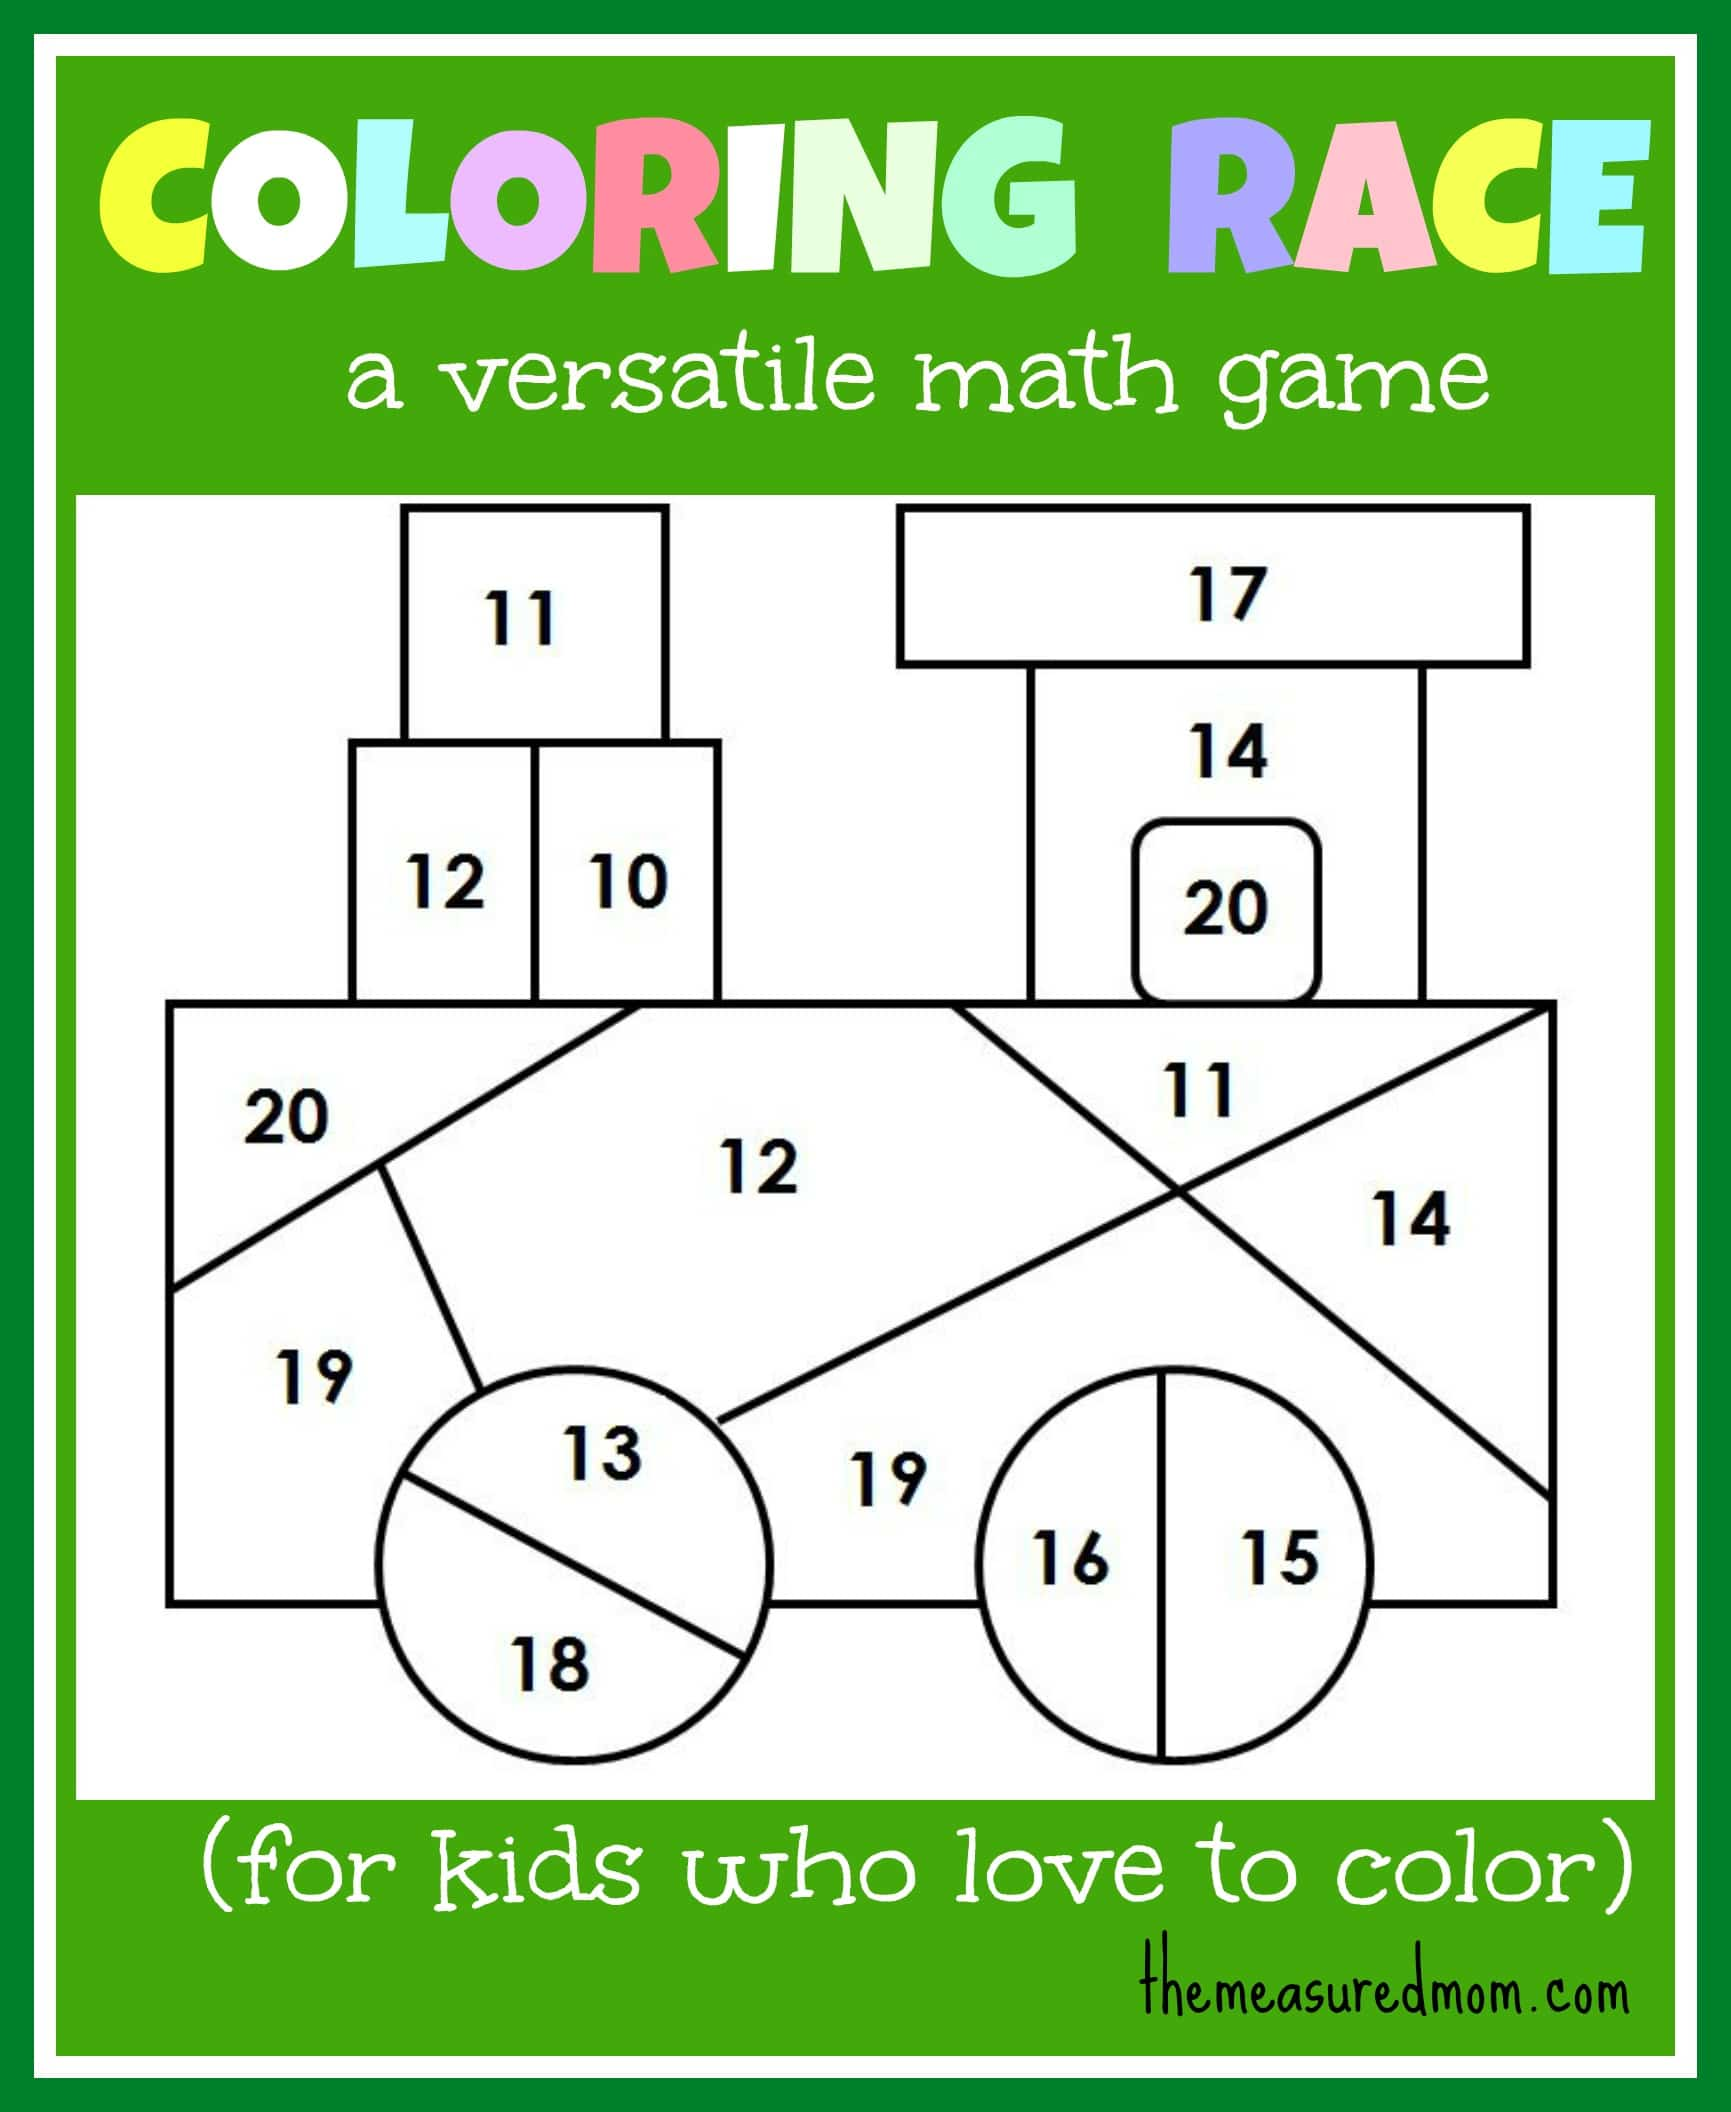 Colouring for kids games - Math Game For Kids Coloring Race Combines Math And Coloring The Measured Mom